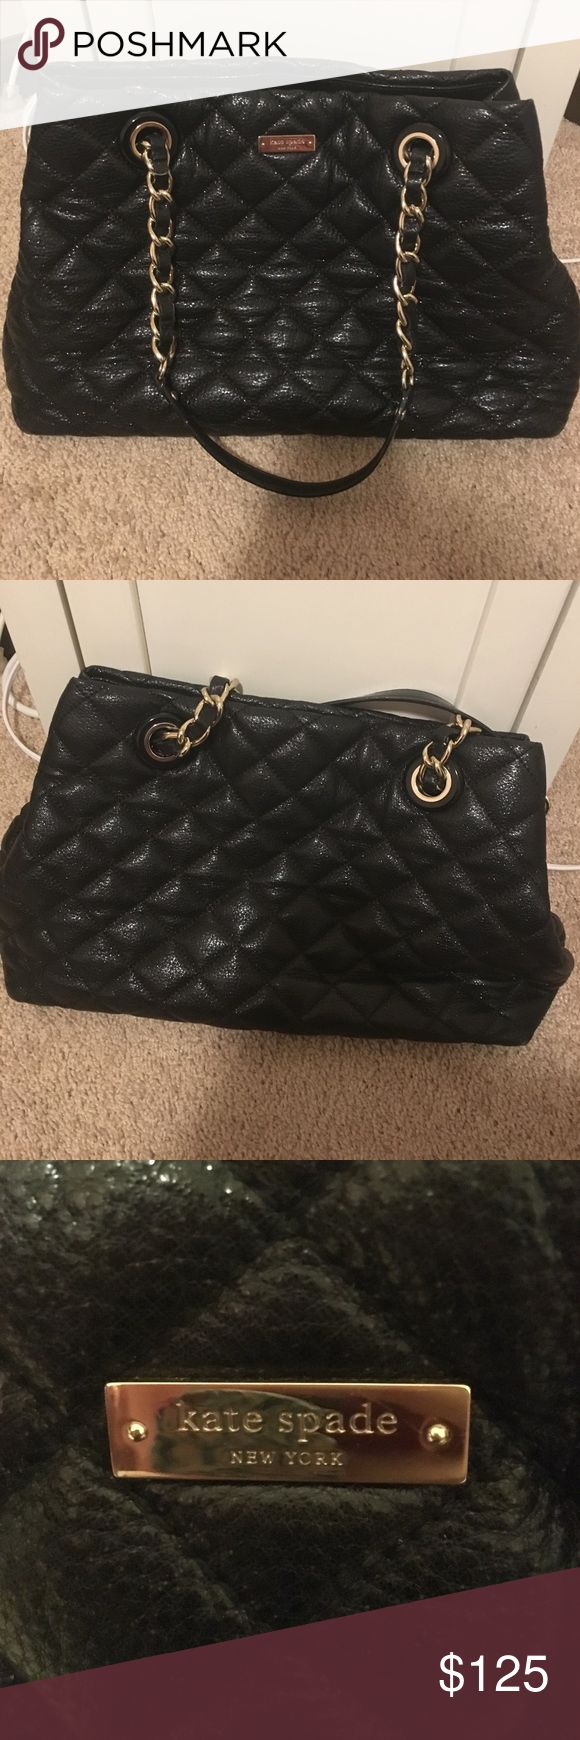 Kate Spade Gold Coast Maryanne Bag Black Kate Spade Gold Coast Maryanne bag. It is a beautiful, everyday use kind of bag that goes with any outfit. Quilted with light gold accents. It has been used, and there is some staining to the inner lining on the bottom. The price will reflect that. kate spade Bags